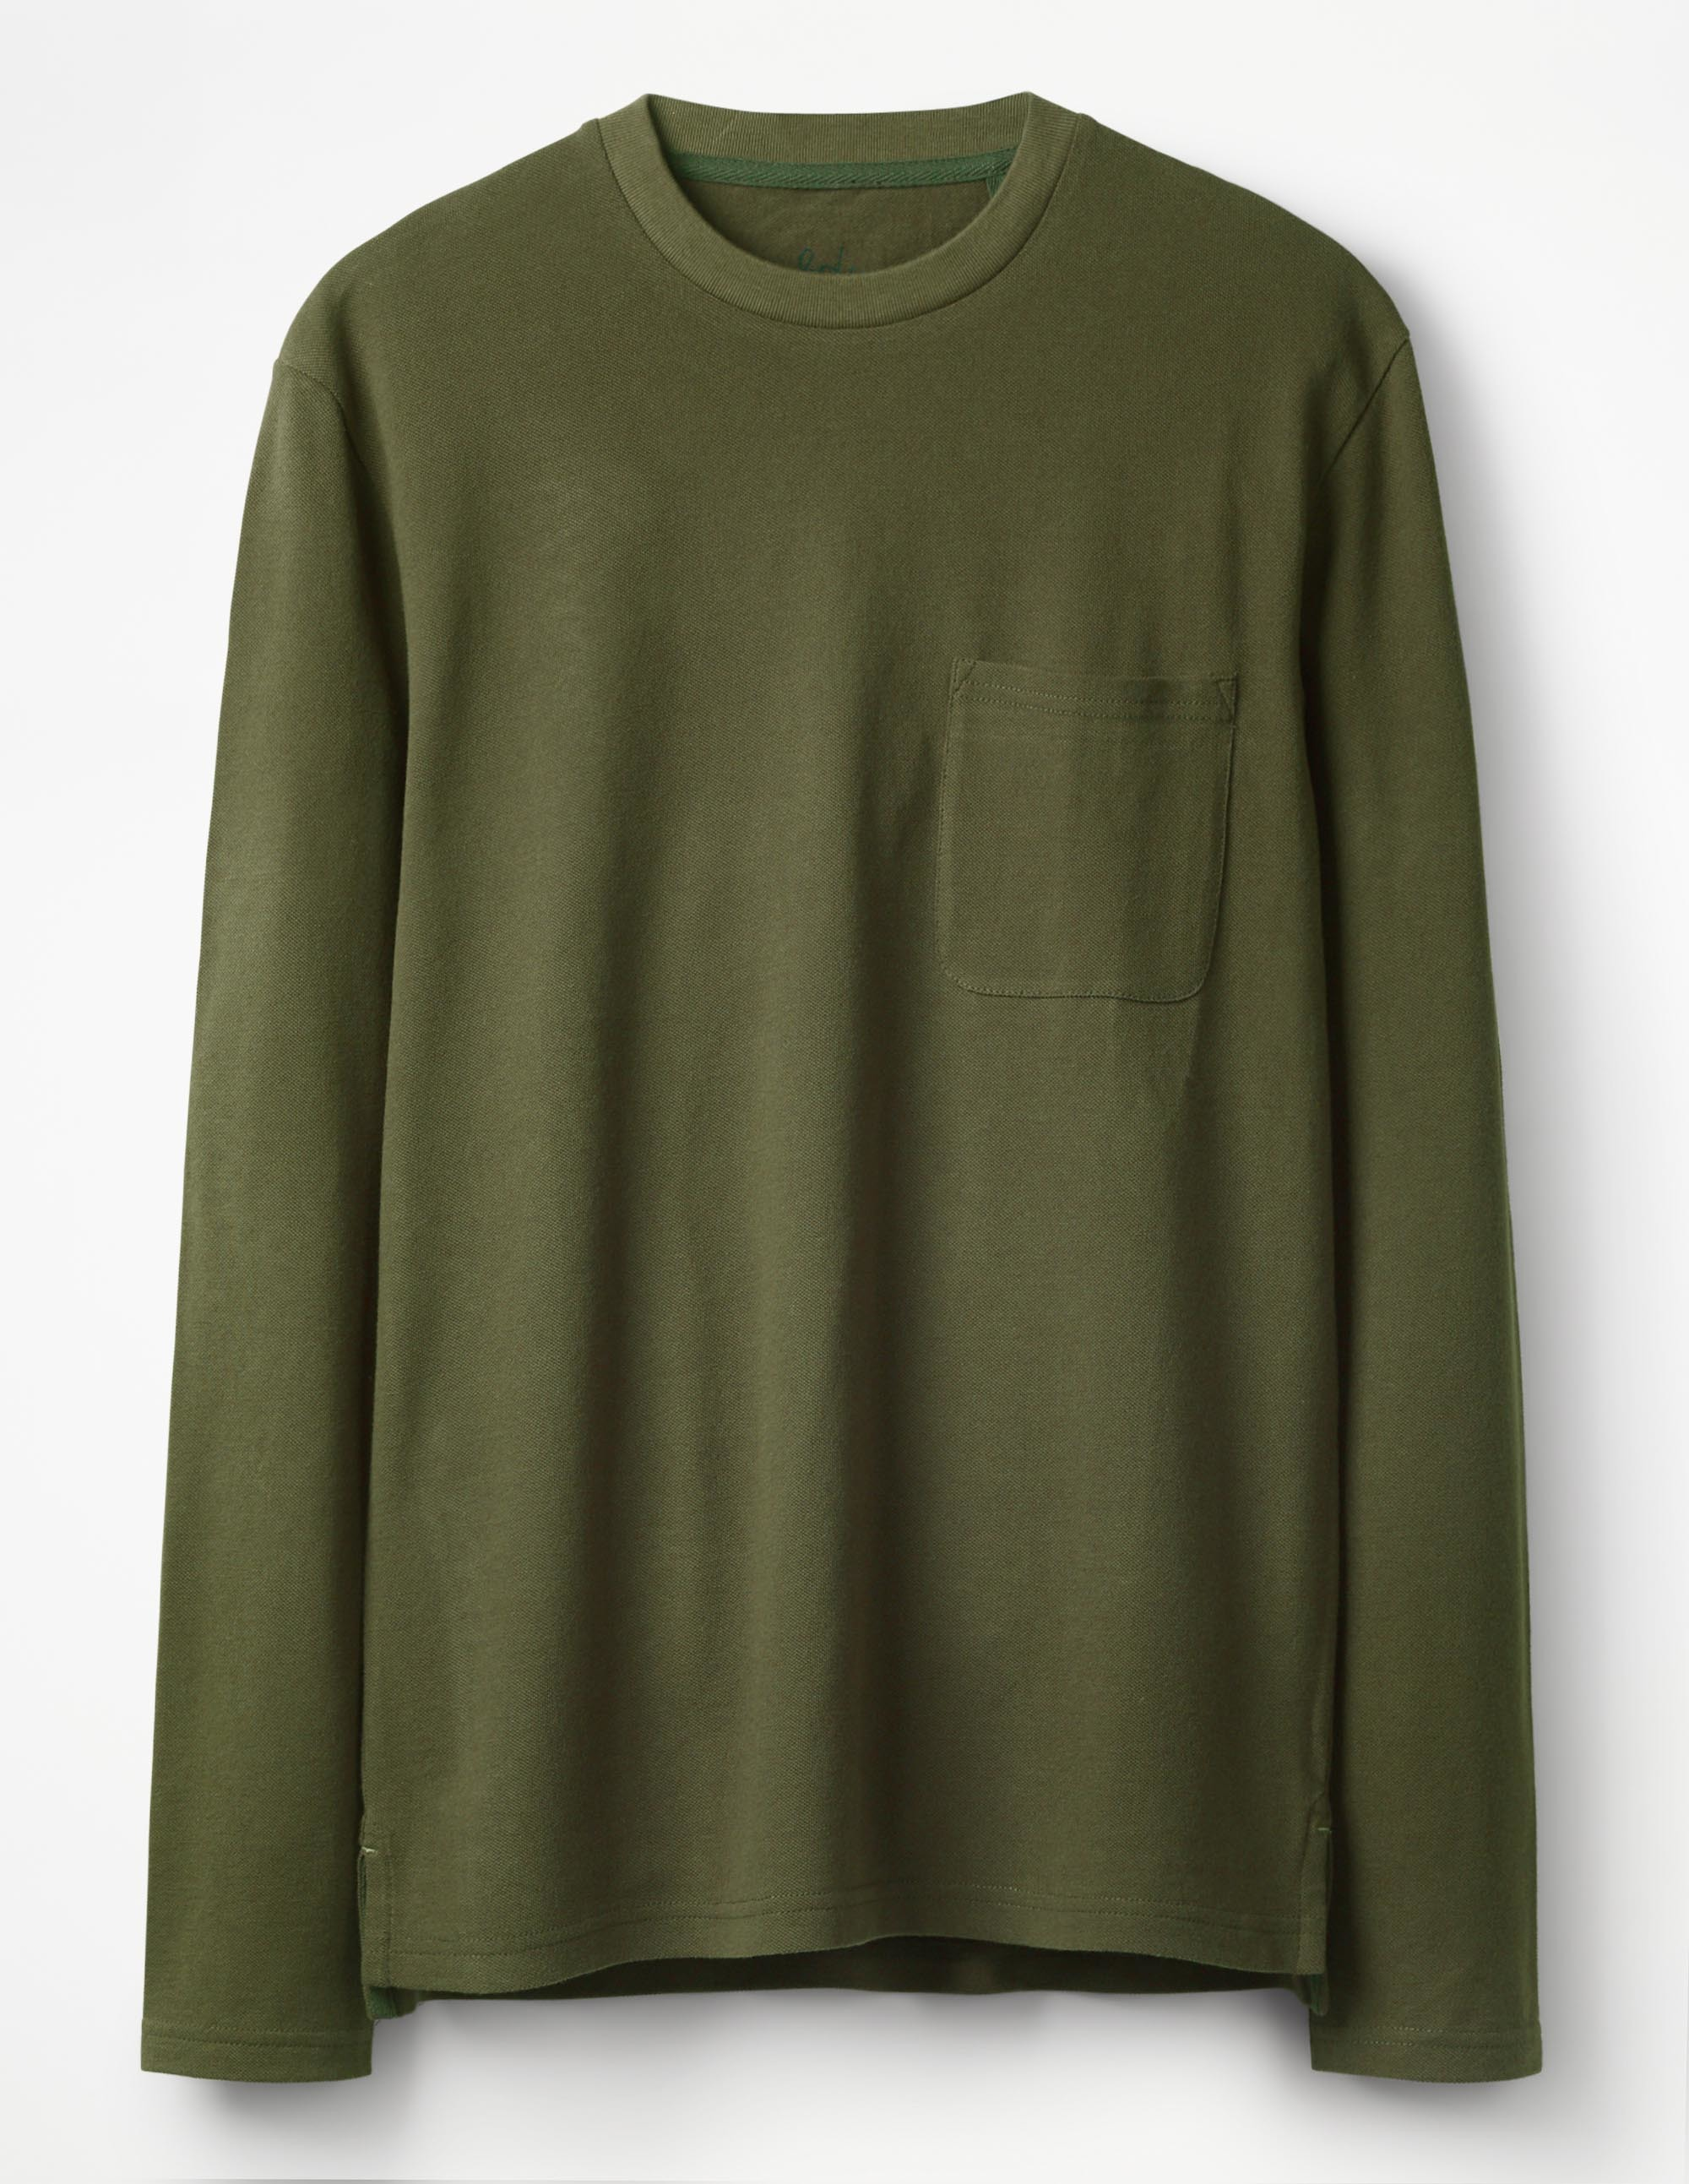 Boden Pine Green Long Sleeve Piqué Crew